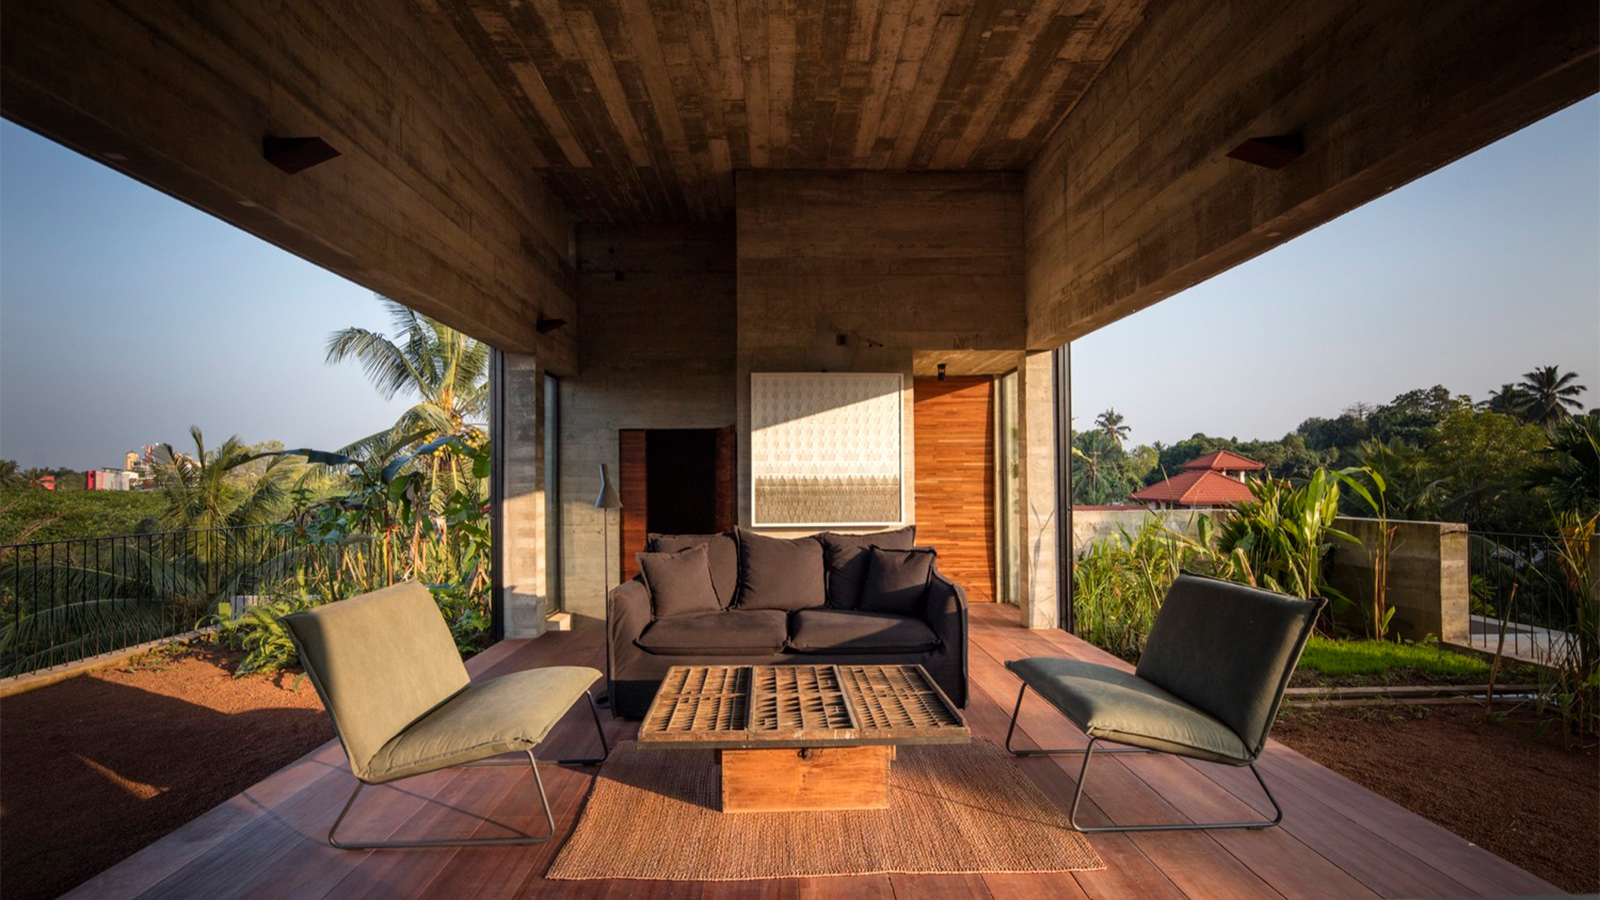 Studio Dwelling at Rajagiriya by Palinda Kannangara Architects